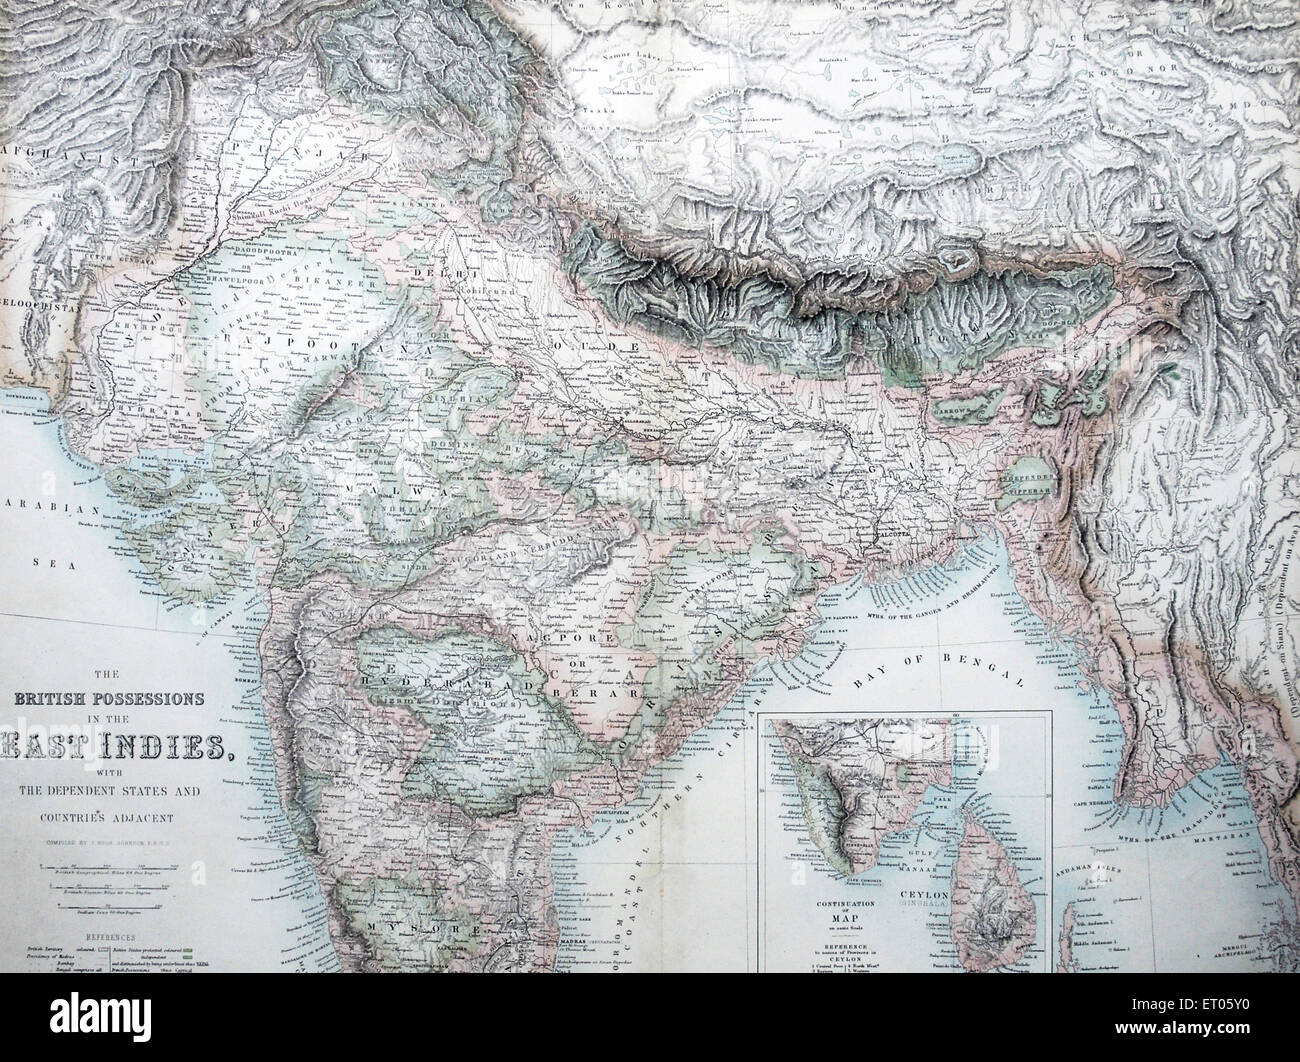 India map ; the british possession in the East India ; with the dependent states and countries adjacent - Stock Image